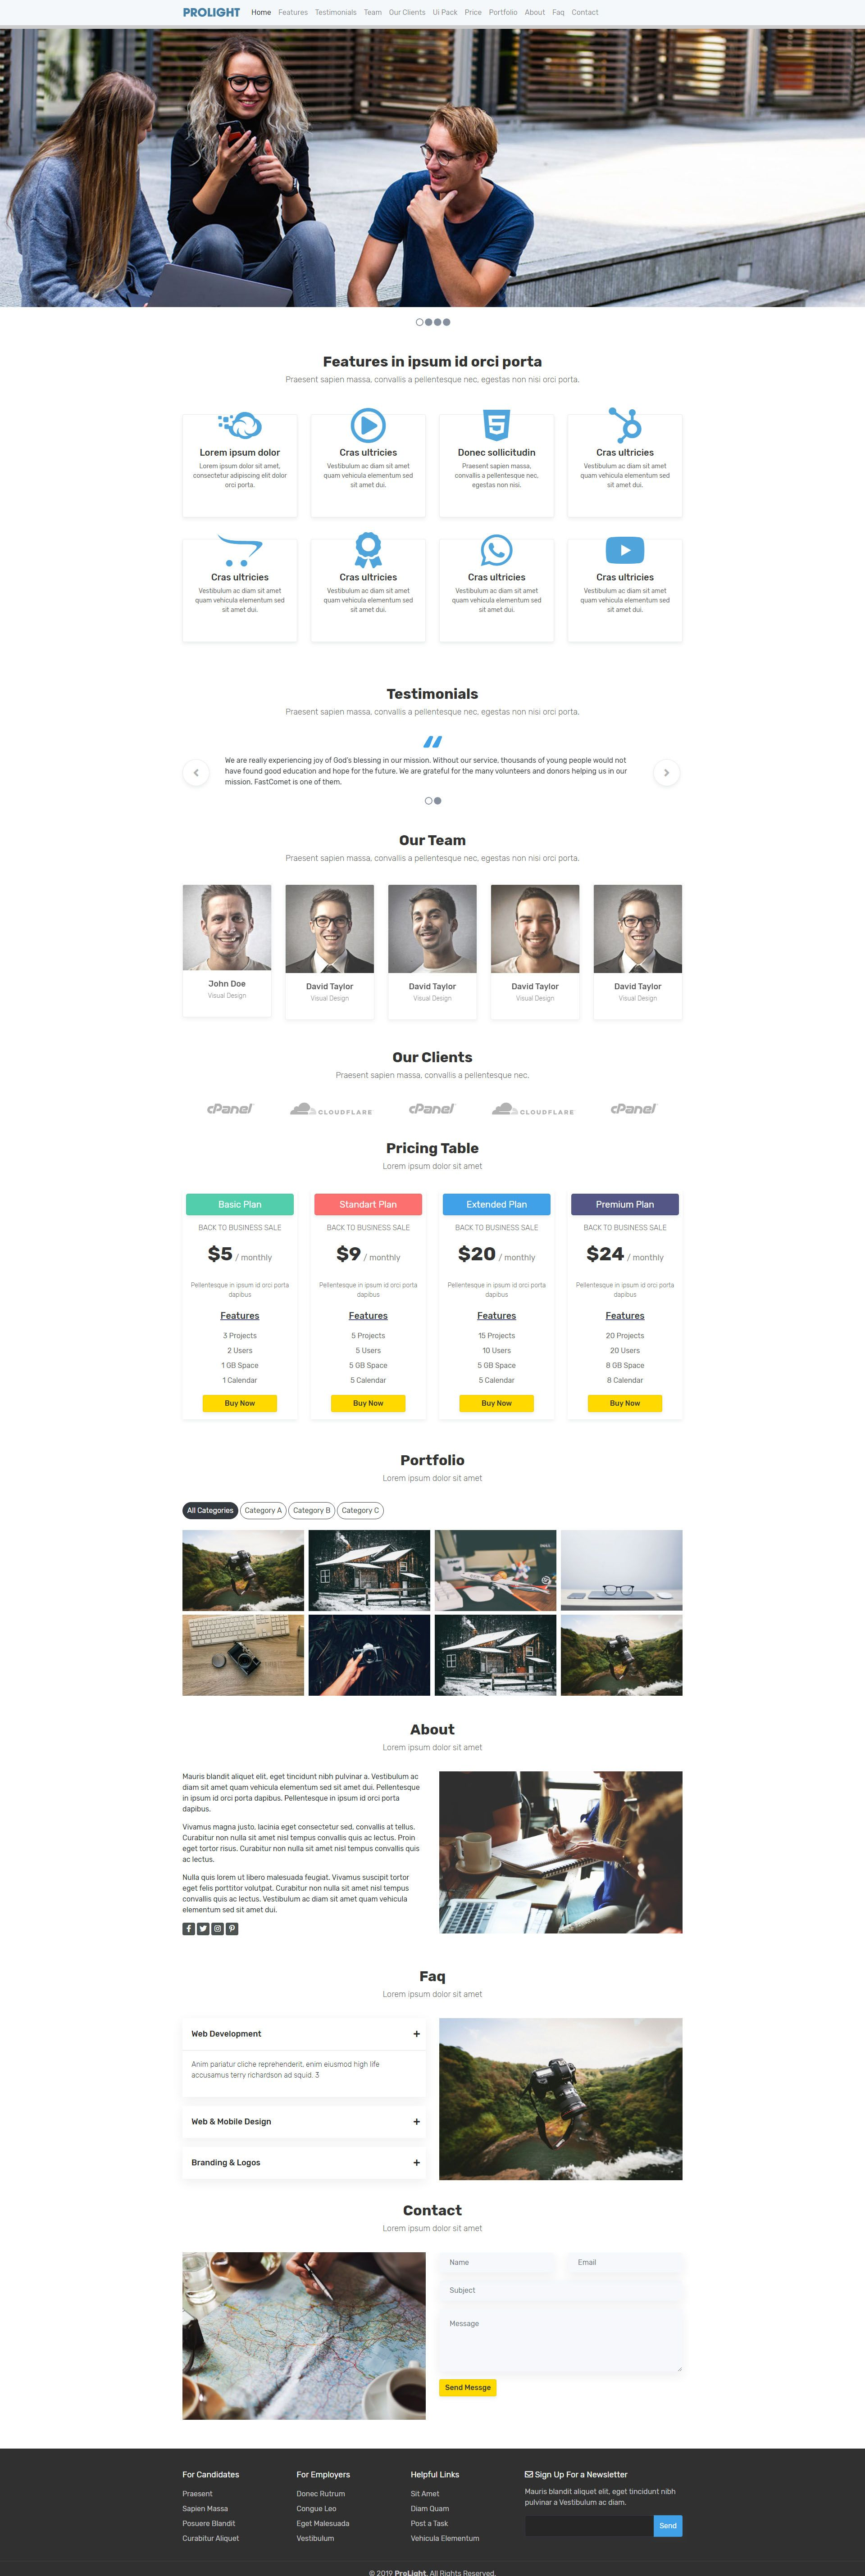 Prolight - Creative App Landing Page Screenshot 1